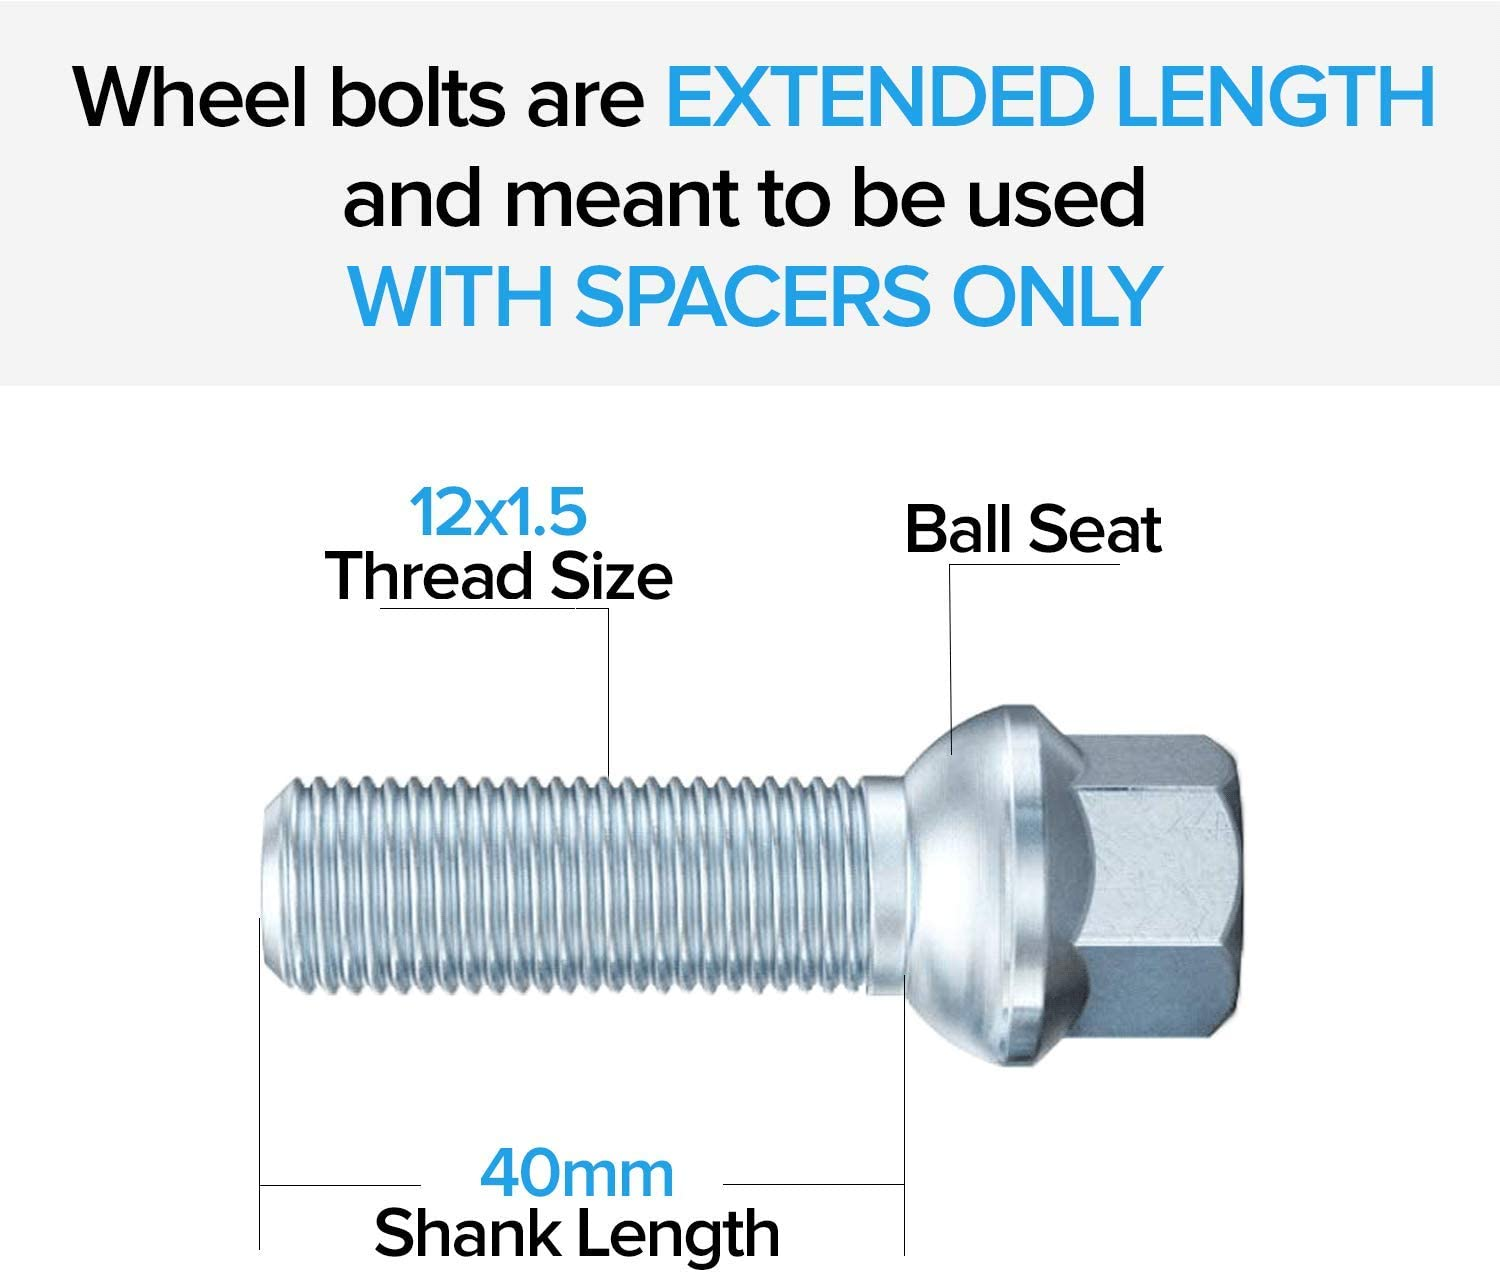 - C230 C240 C280 C320 E320 E420 E430 CL43 AMG SLK CLK 20 Extended Silver 12x1.5 Lug Bolts Fits Many Mercedes Benz Vehicles 40mm Shank Length, Ball Seat Check Description for Exact Year//Model